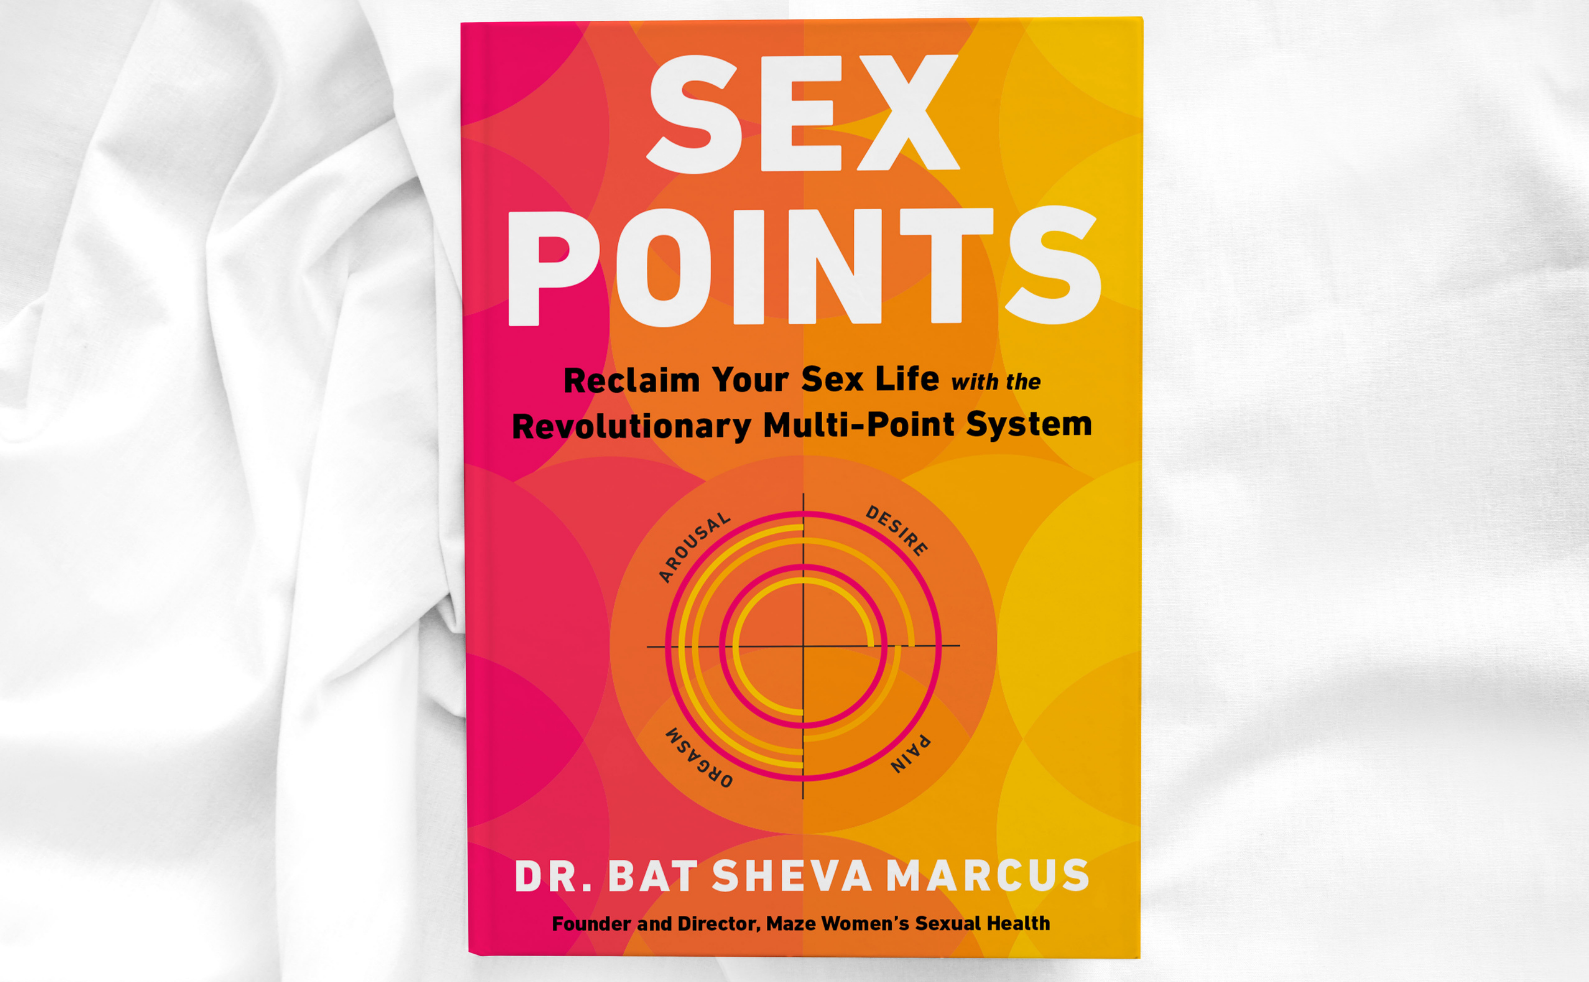 Why did I write Sex Points?